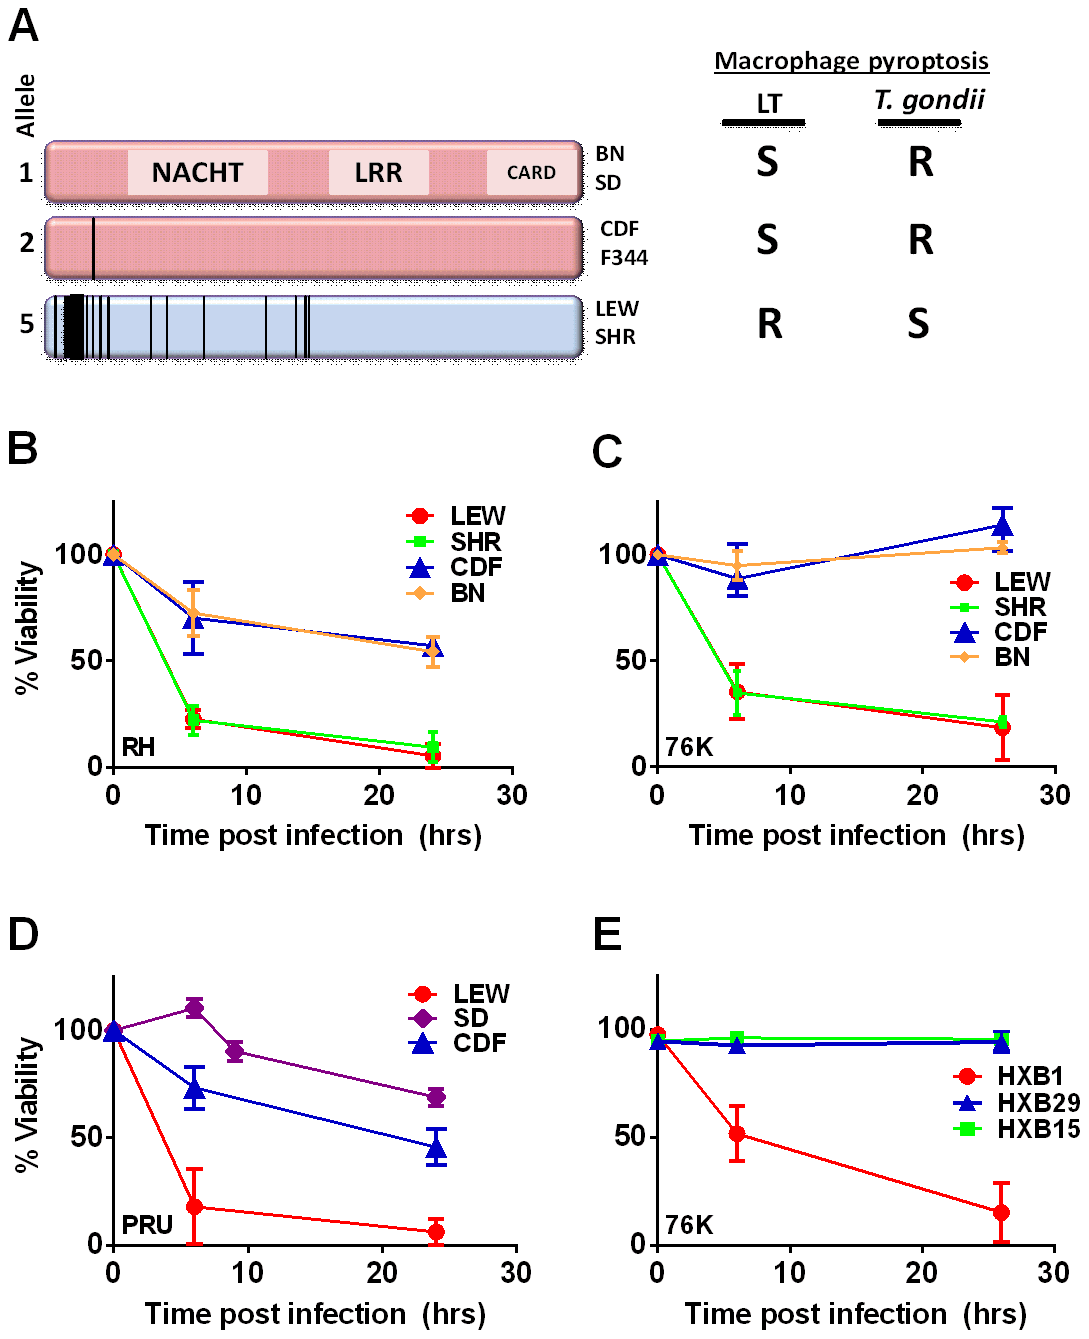 NLRP1 sequence in inbred and RI rats correlates with rapid macrophage death.